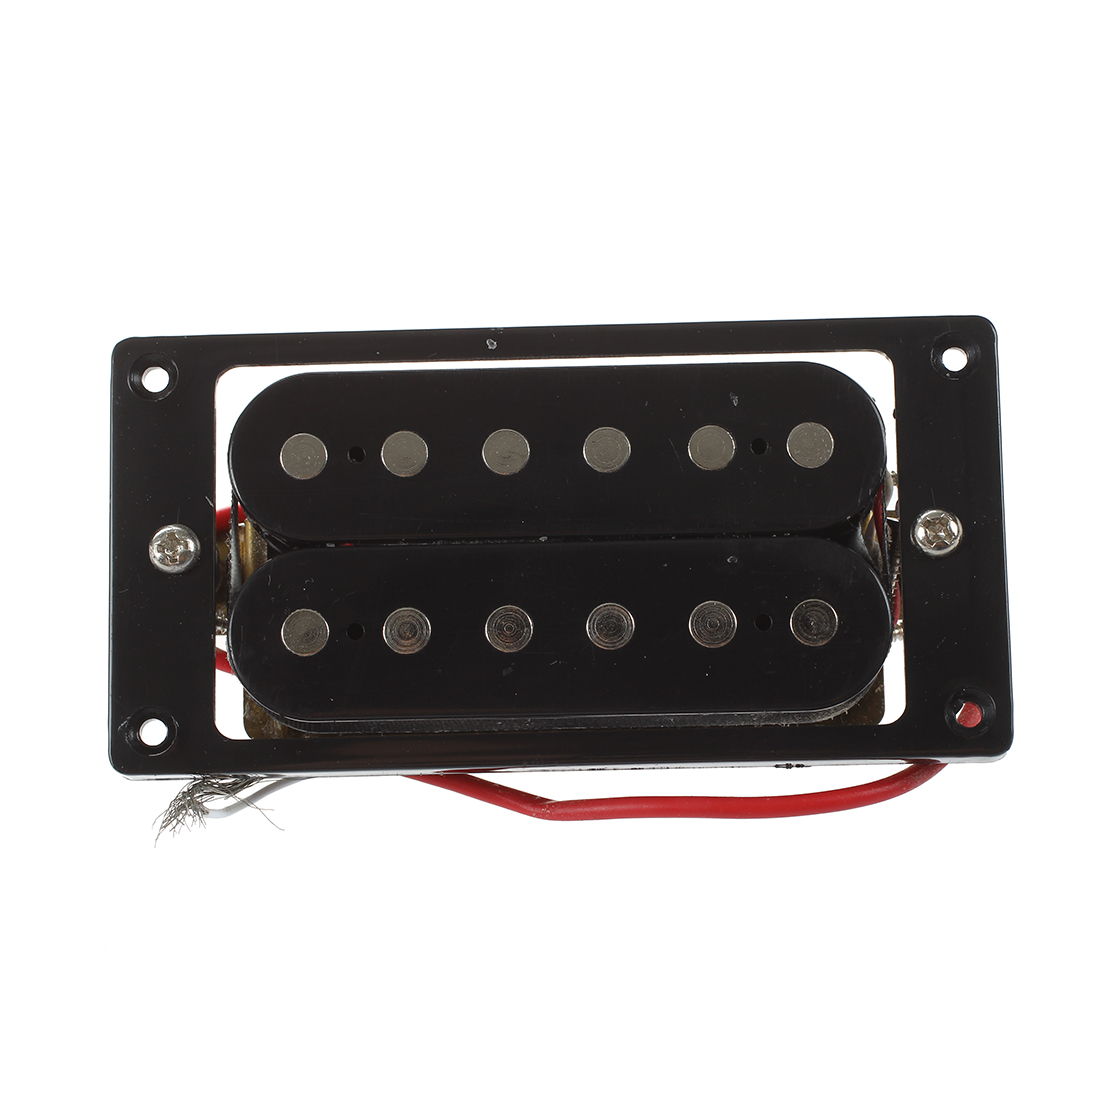 HOT 8X 2PCs(1 set)Black Humbucker Double Coil Electric Guitar Pickups + Frame Screw rocket hot sale dual hot rail single coil humbucker pickup 4 wire for electric guitar excellent guitar parts